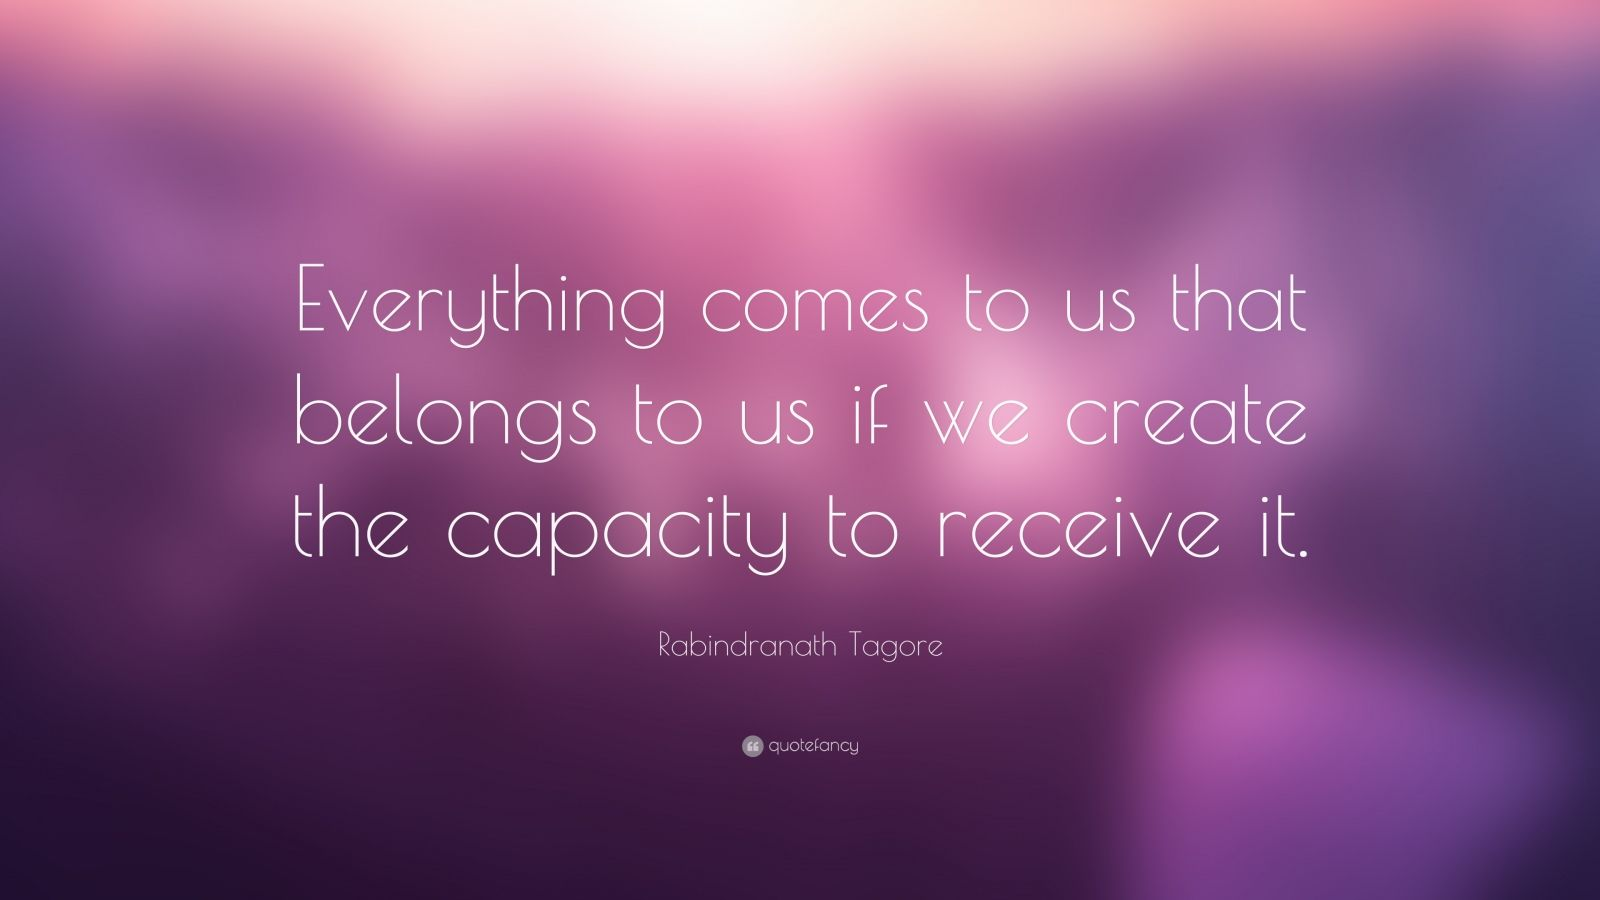 rabindranath tagore quotes 22 wallpapers quotefancy